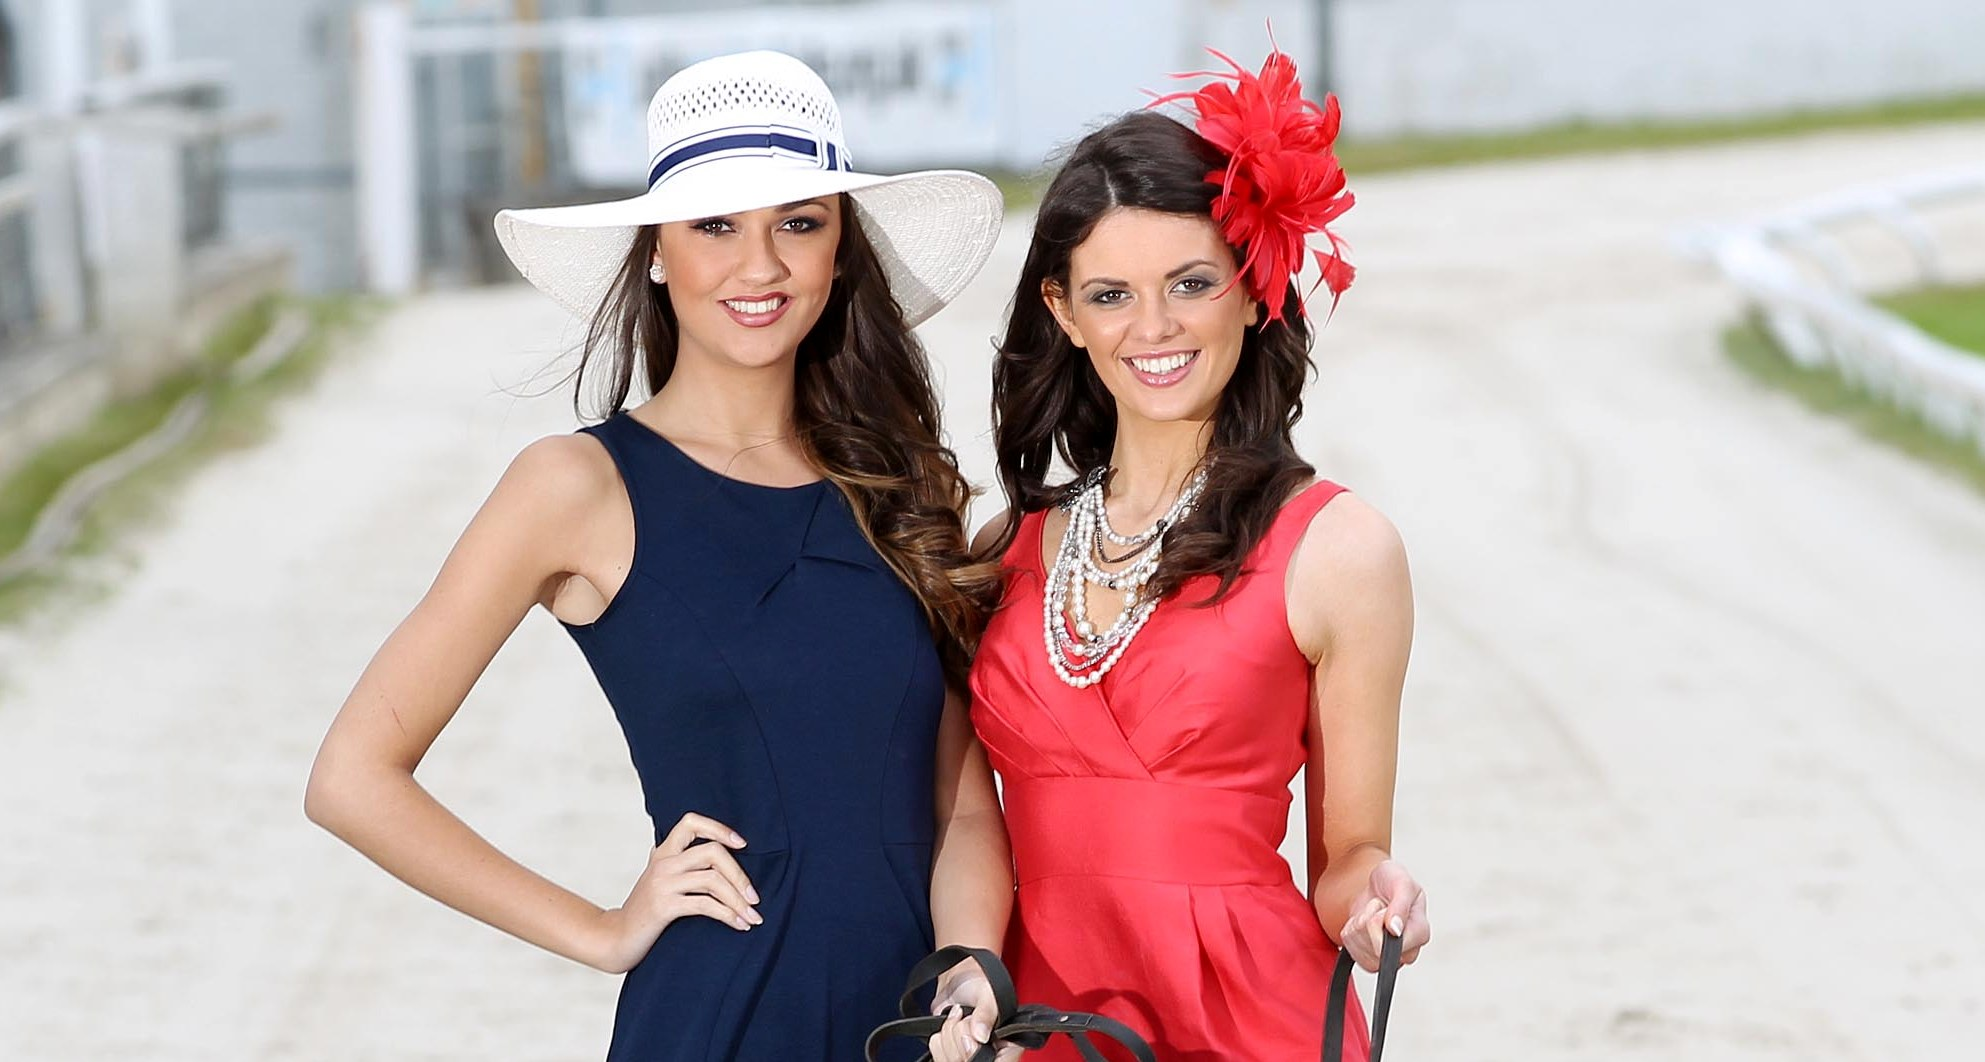 Greyhound glamour: Who's the Best Dressed at Drumbo?